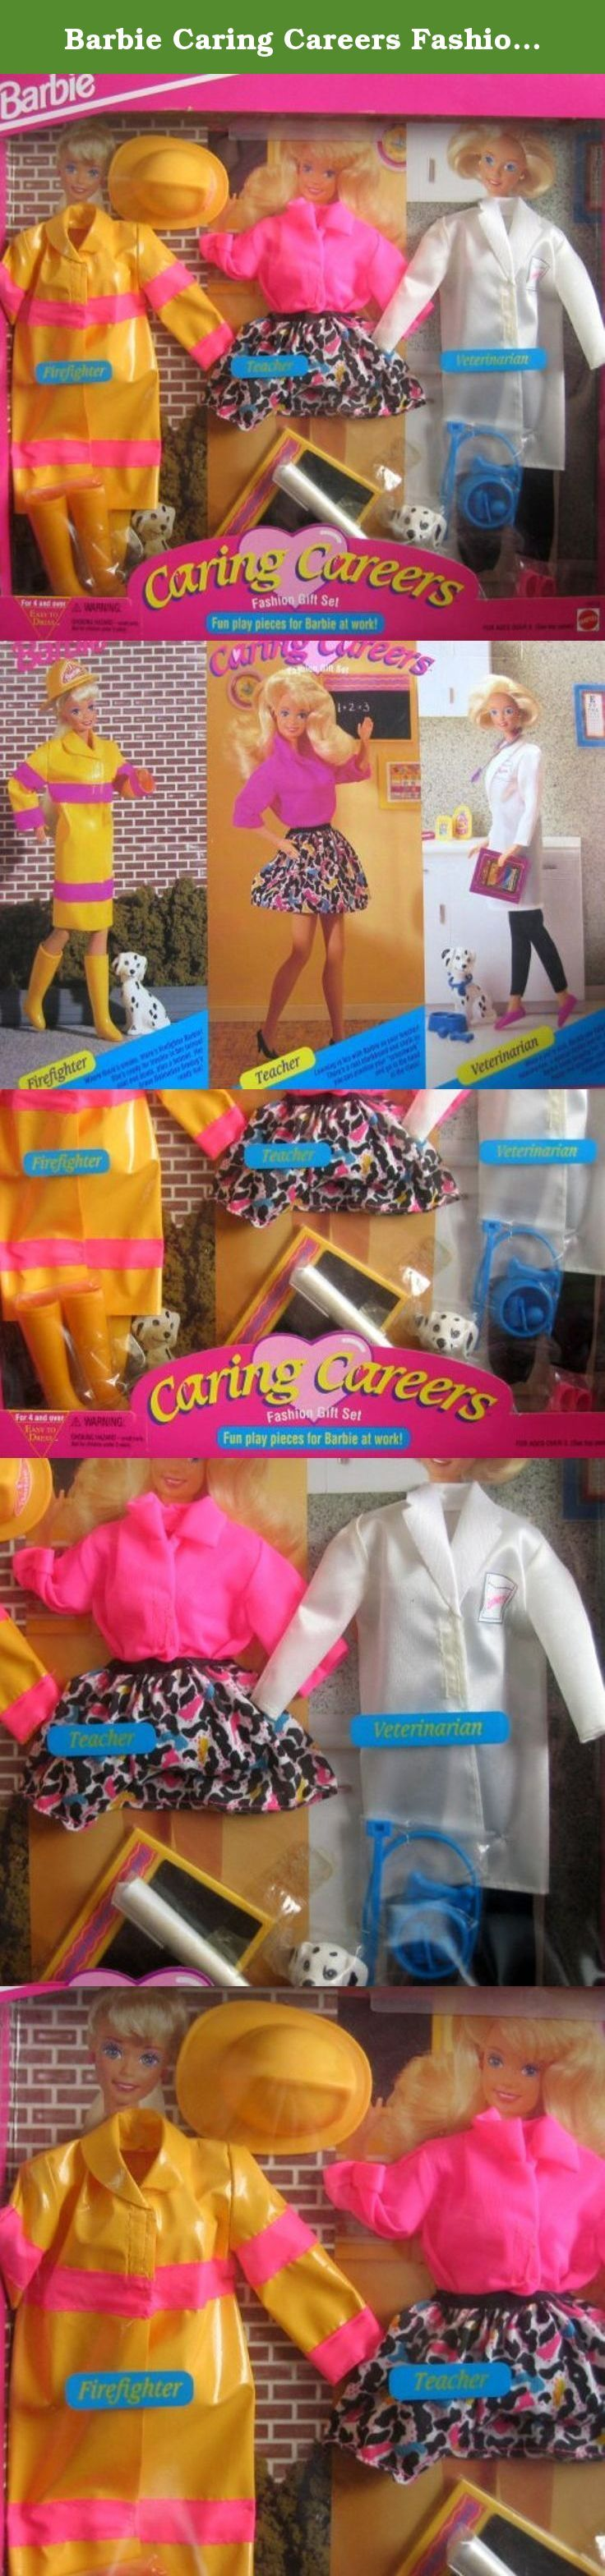 Barbie Caring Careers Fashion Gift Set - Firefighter, Vet & Teacher (1993). Caring Careers Fashion Gift Set, Fun Play Pieces for Barbie at Work! is a 1993 Mattel production set. These are Easy To Dress Fashions for Ages 4+ years. Included in the package are outfits for Barbie and/or her friends to be a Firefighter, a Teacher and a Veterinarian. Sets include: FIREFIGHTER: a yellow plastic Rain-type (vinyl) Coat with a pink stripe at the top & a pink stripe near the bottom; each long coat...